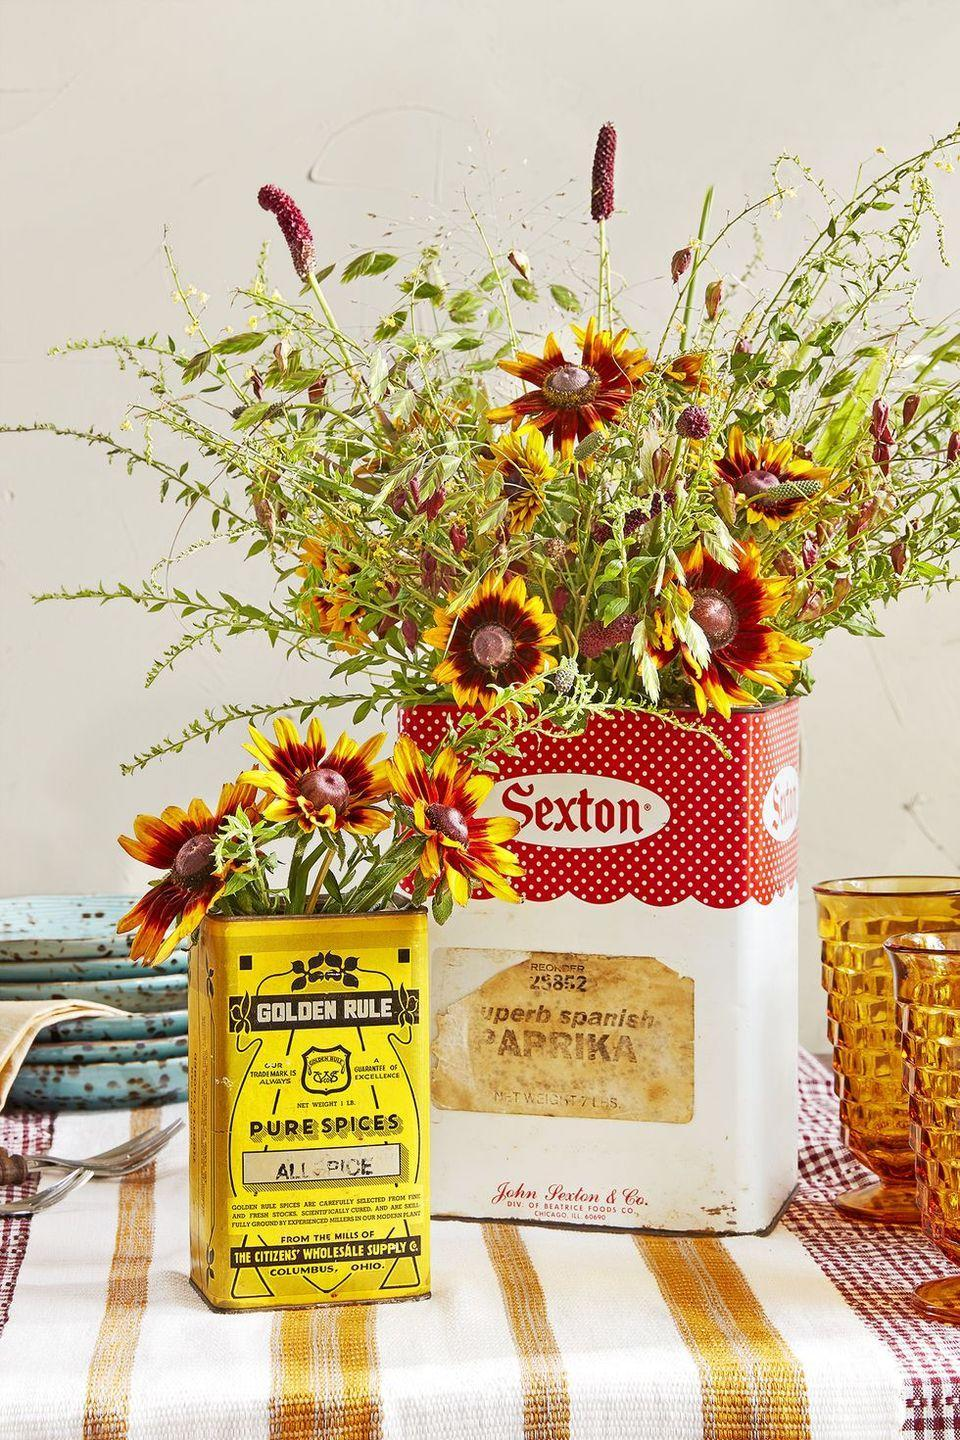 """<p>Mix and match wildflowers and vintage spice cans in autumnal hues according to the length of your table. Display two for small settings, and a series for longer setups.</p><p><a class=""""link rapid-noclick-resp"""" href=""""https://go.redirectingat.com?id=74968X1596630&url=https%3A%2F%2Fwww.ebay.com%2Fsch%2Fi.html%3F_from%3DR40%26_trksid%3Dp2334524.m570.l1313.TR11.TRC2.A0.H0.Xspice%2Btin.TRS1%26_nkw%3Dspice%2Btins%26_sacat%3D0%26LH_TitleDesc%3D0%26LH_TitleDesc%3D0%26_osacat%3D0%26_odkw%3Dspice%2Bcanisters&sref=https%3A%2F%2Fwww.countryliving.com%2Fentertaining%2Fg2130%2Fthanksgiving-centerpieces%2F"""" rel=""""nofollow noopener"""" target=""""_blank"""" data-ylk=""""slk:SHOP SPICE TINS"""">SHOP SPICE TINS</a></p>"""